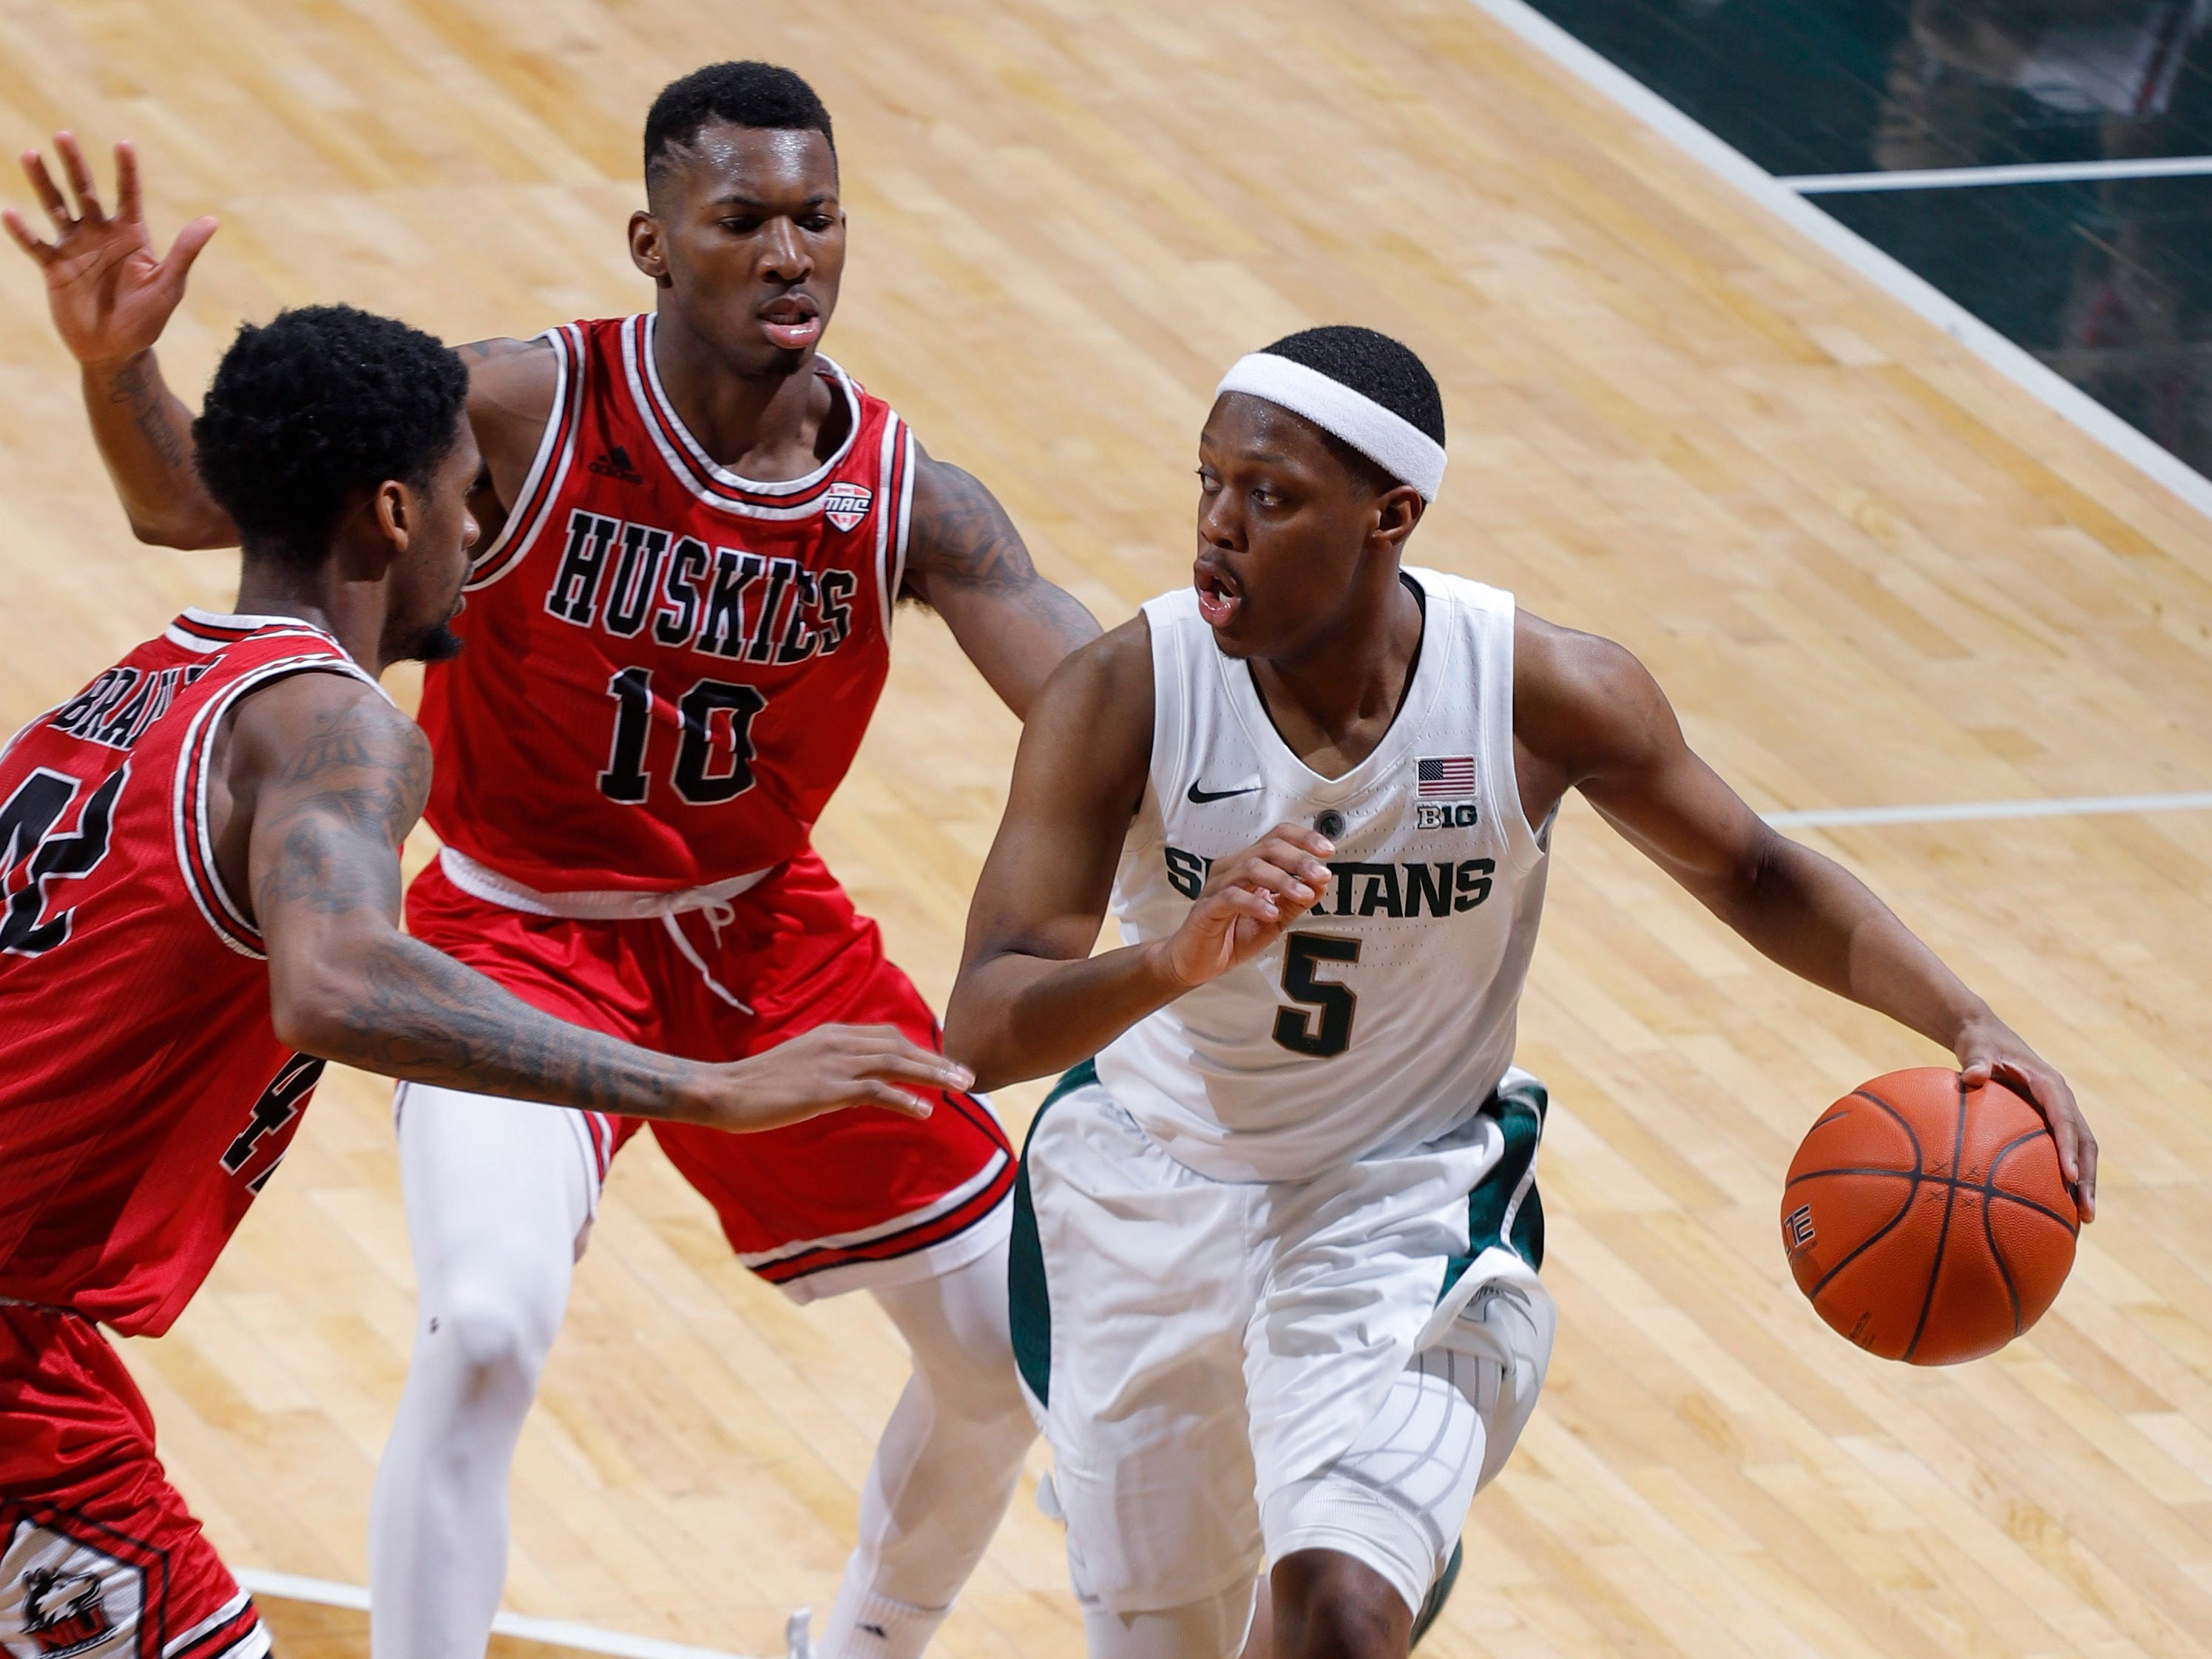 Michigan State's Cassius Winston, right, controls the ball against Northern Illinois' Eugene German, center, and Levi Bradley, Saturday, Dec. 29, 2018, in East Lansing, Mich.